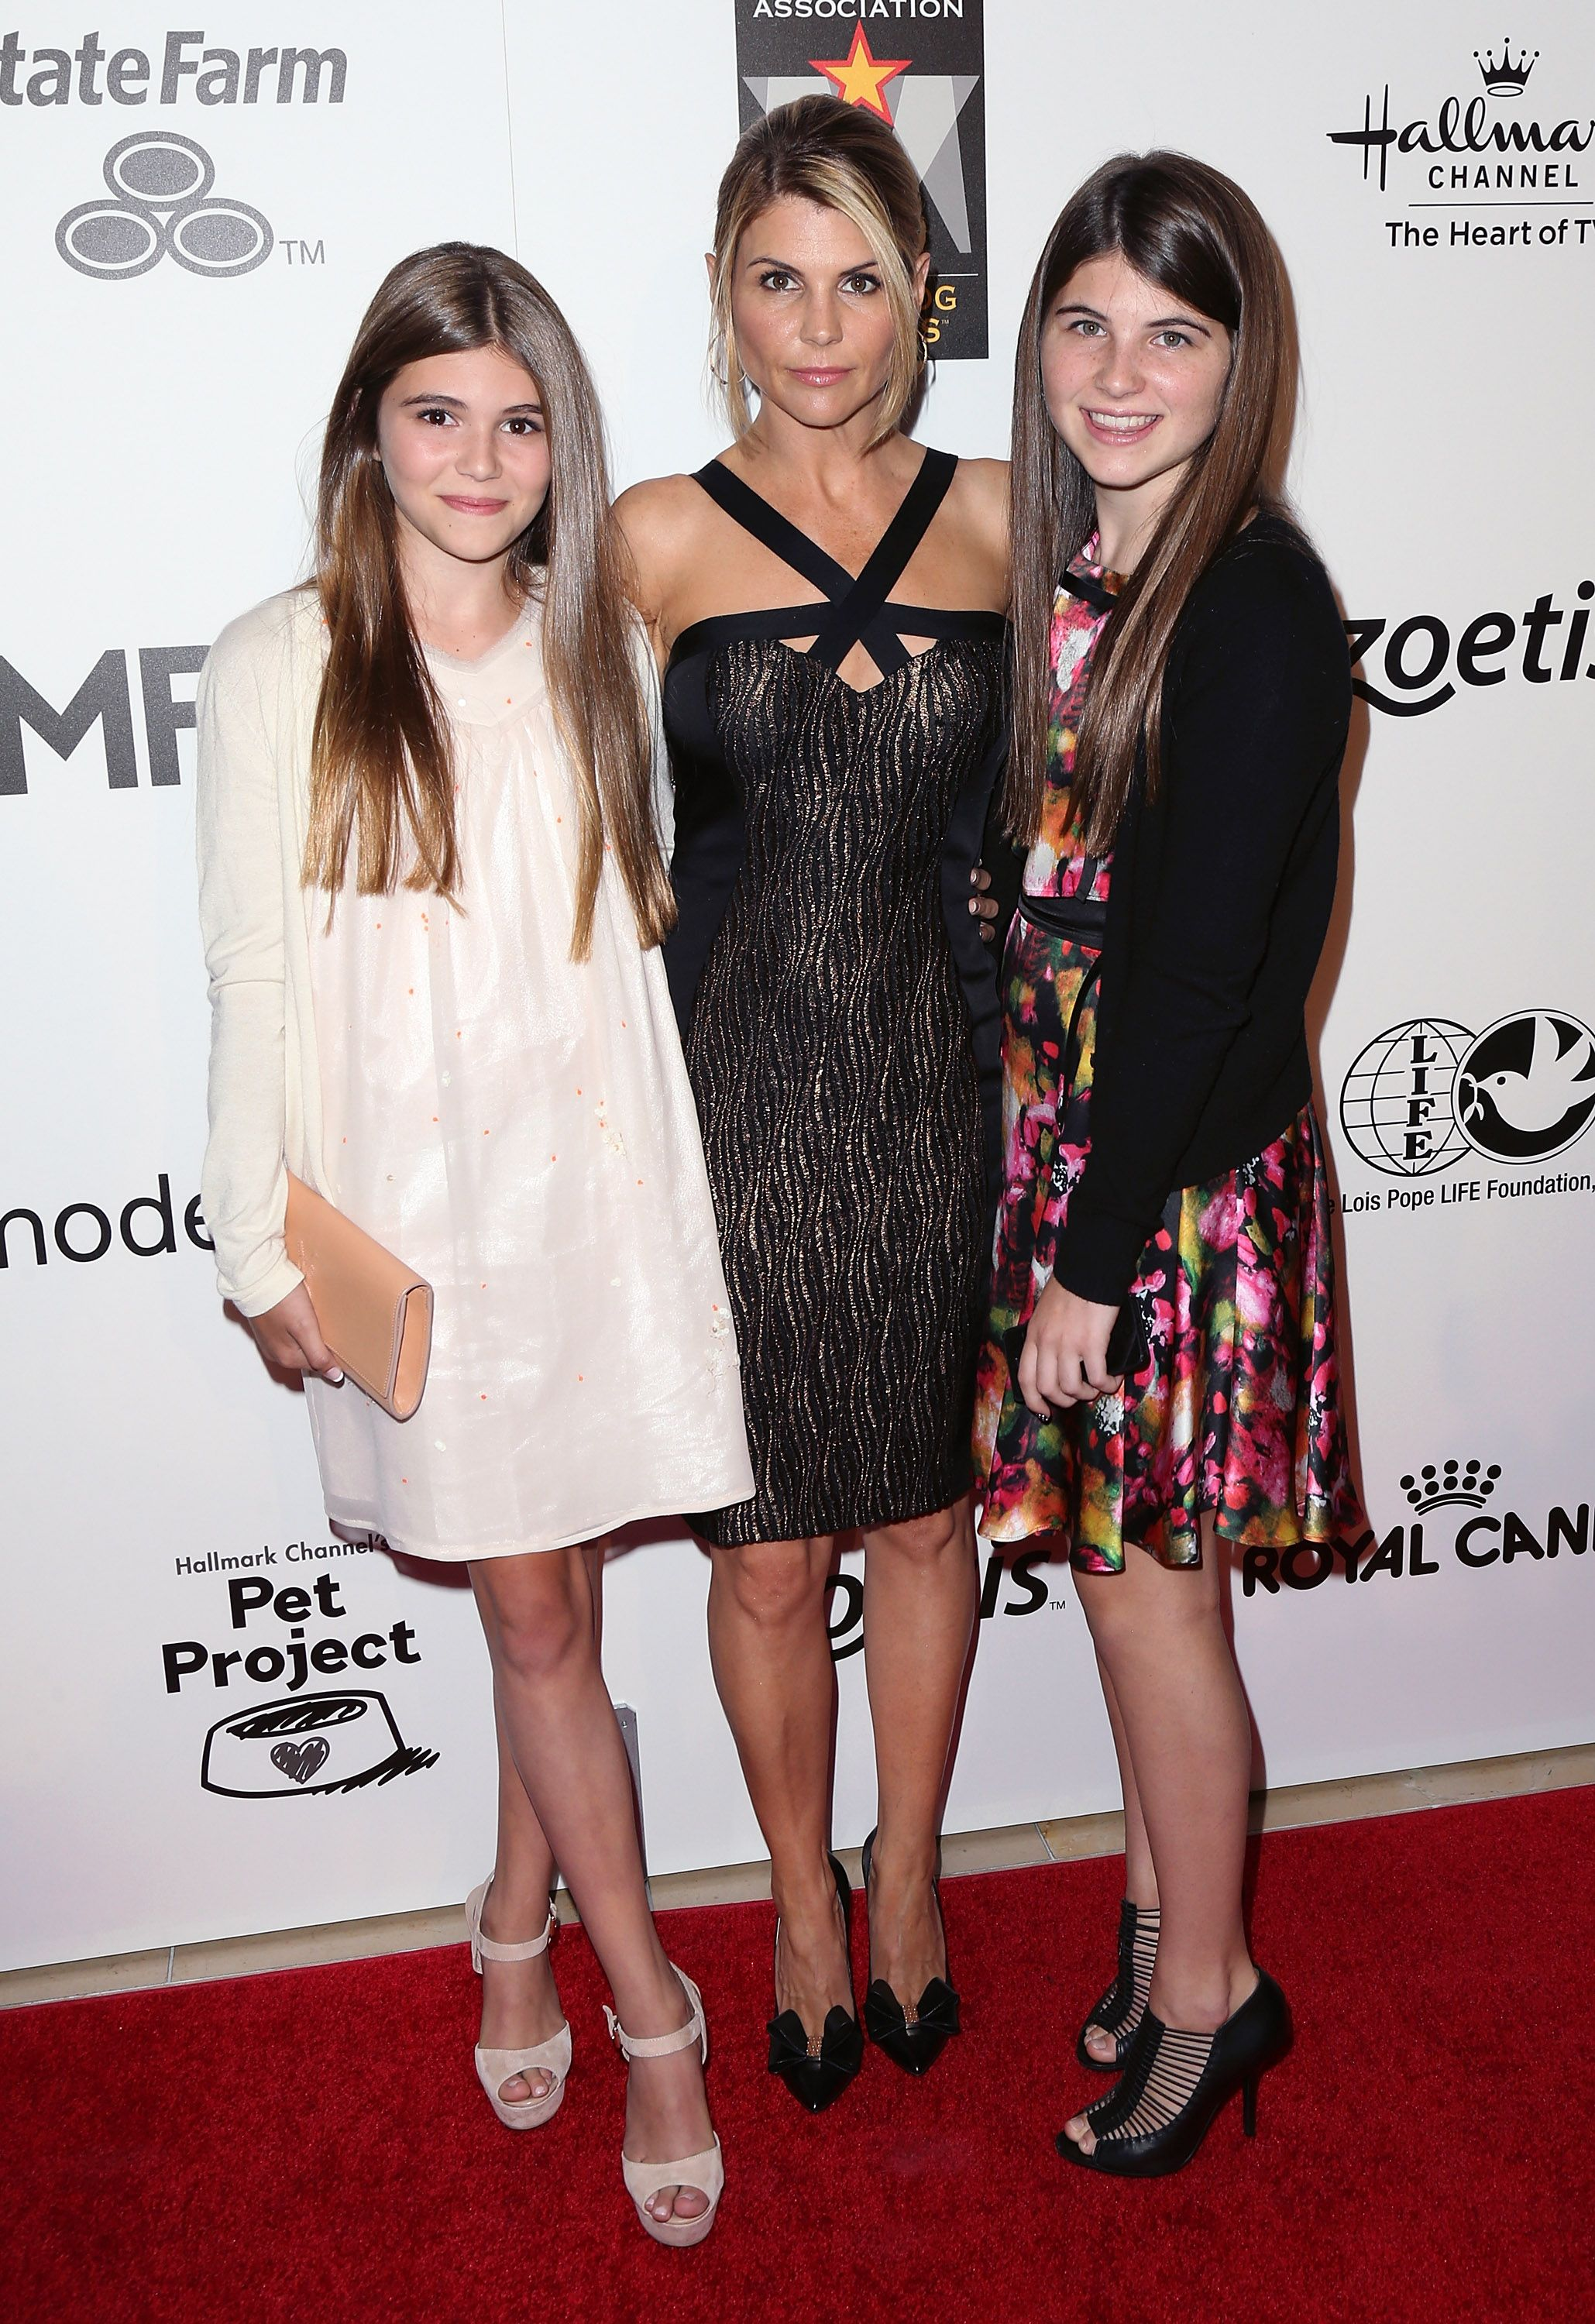 Olivia Giannulli, Lori Loughlin, and Isabella Giannulli during the 3rd Annual American Humane Association Hero Dog Awards on October 5, 2013, in Beverly Hills, California.   Source: Getty Images